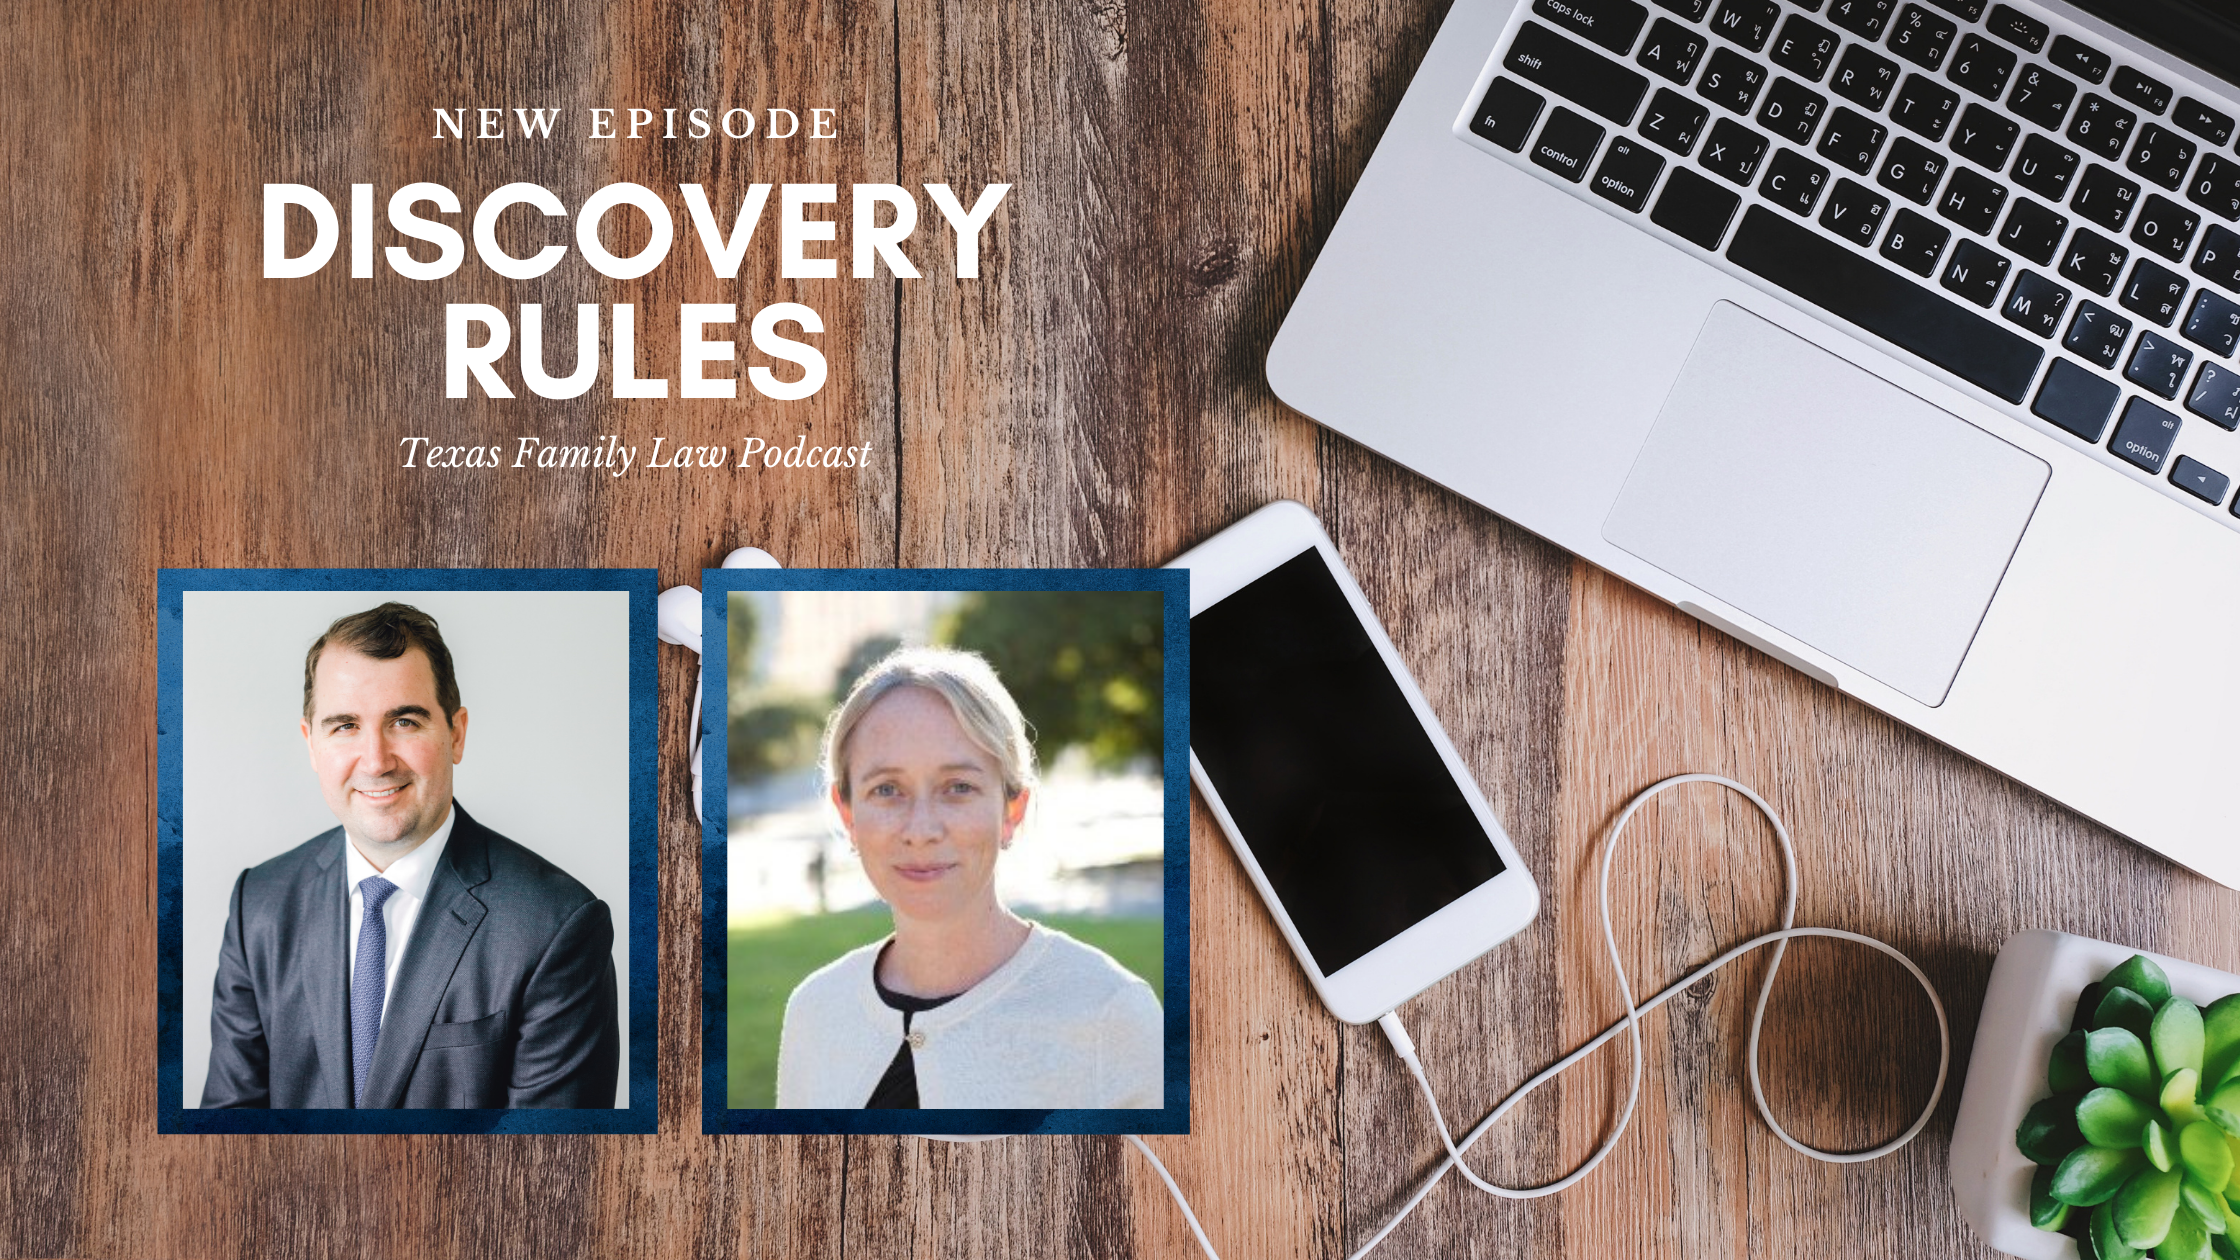 Texas Family Law Podcast: New Discovery Rules (feat. Audrey Blair)